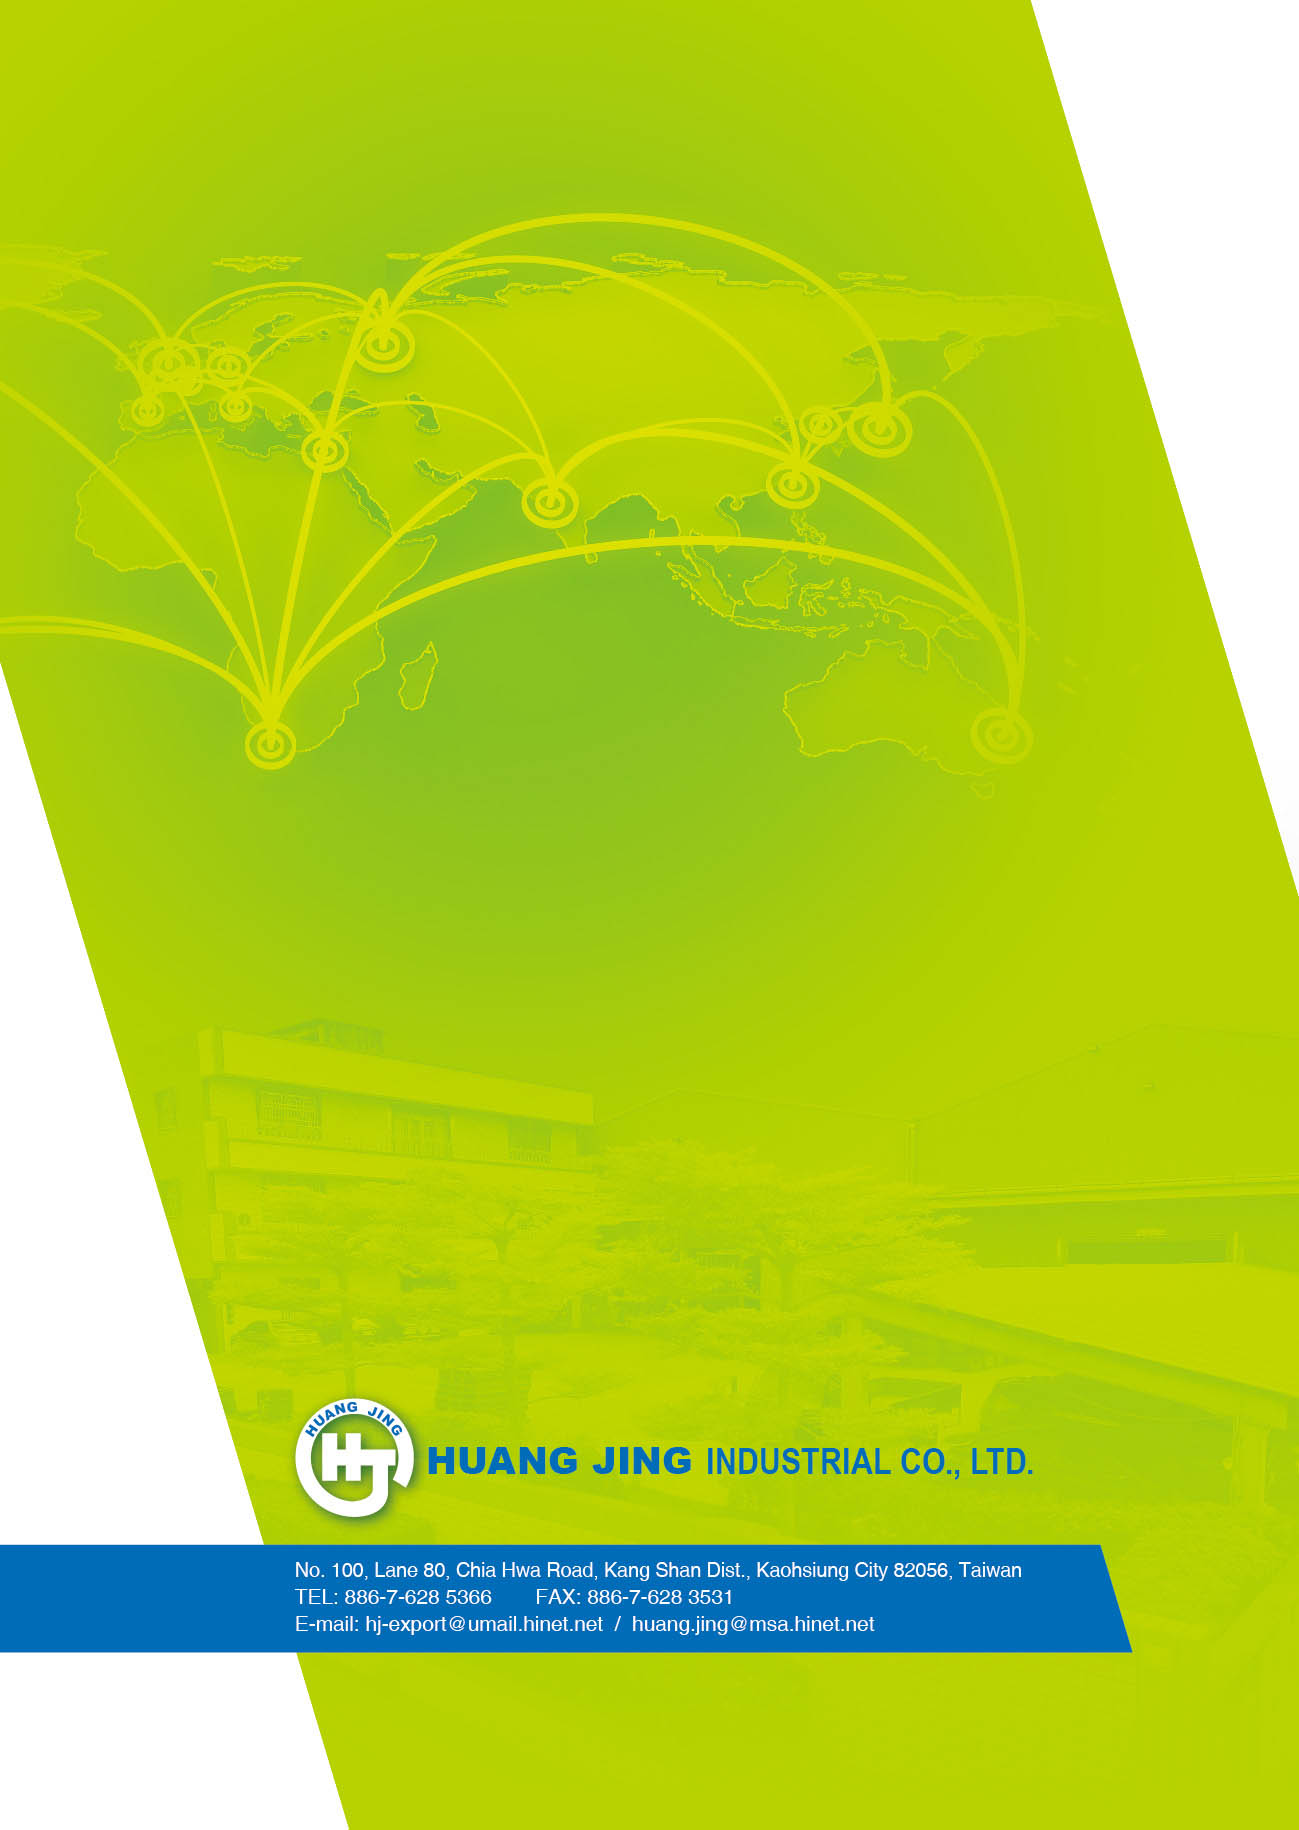 HUANG JING INDUSTRIAL CO., LTD. _Online Catalogues